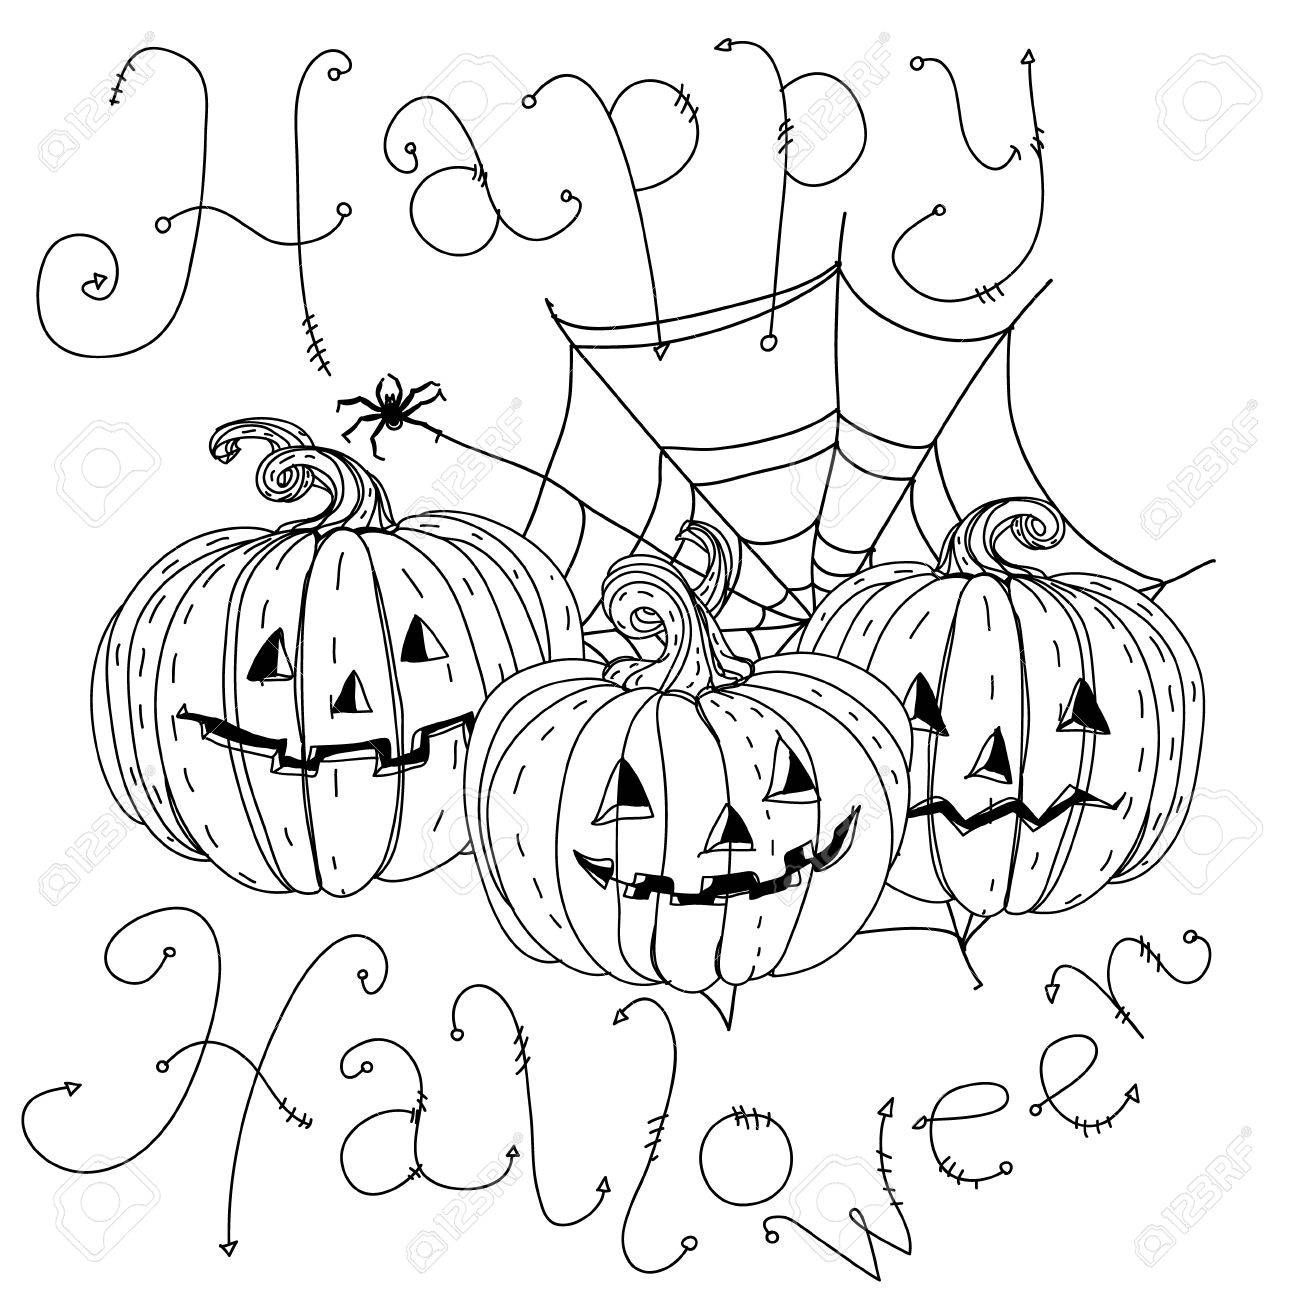 2019 year look- Halloween Happy coloring banner pictures